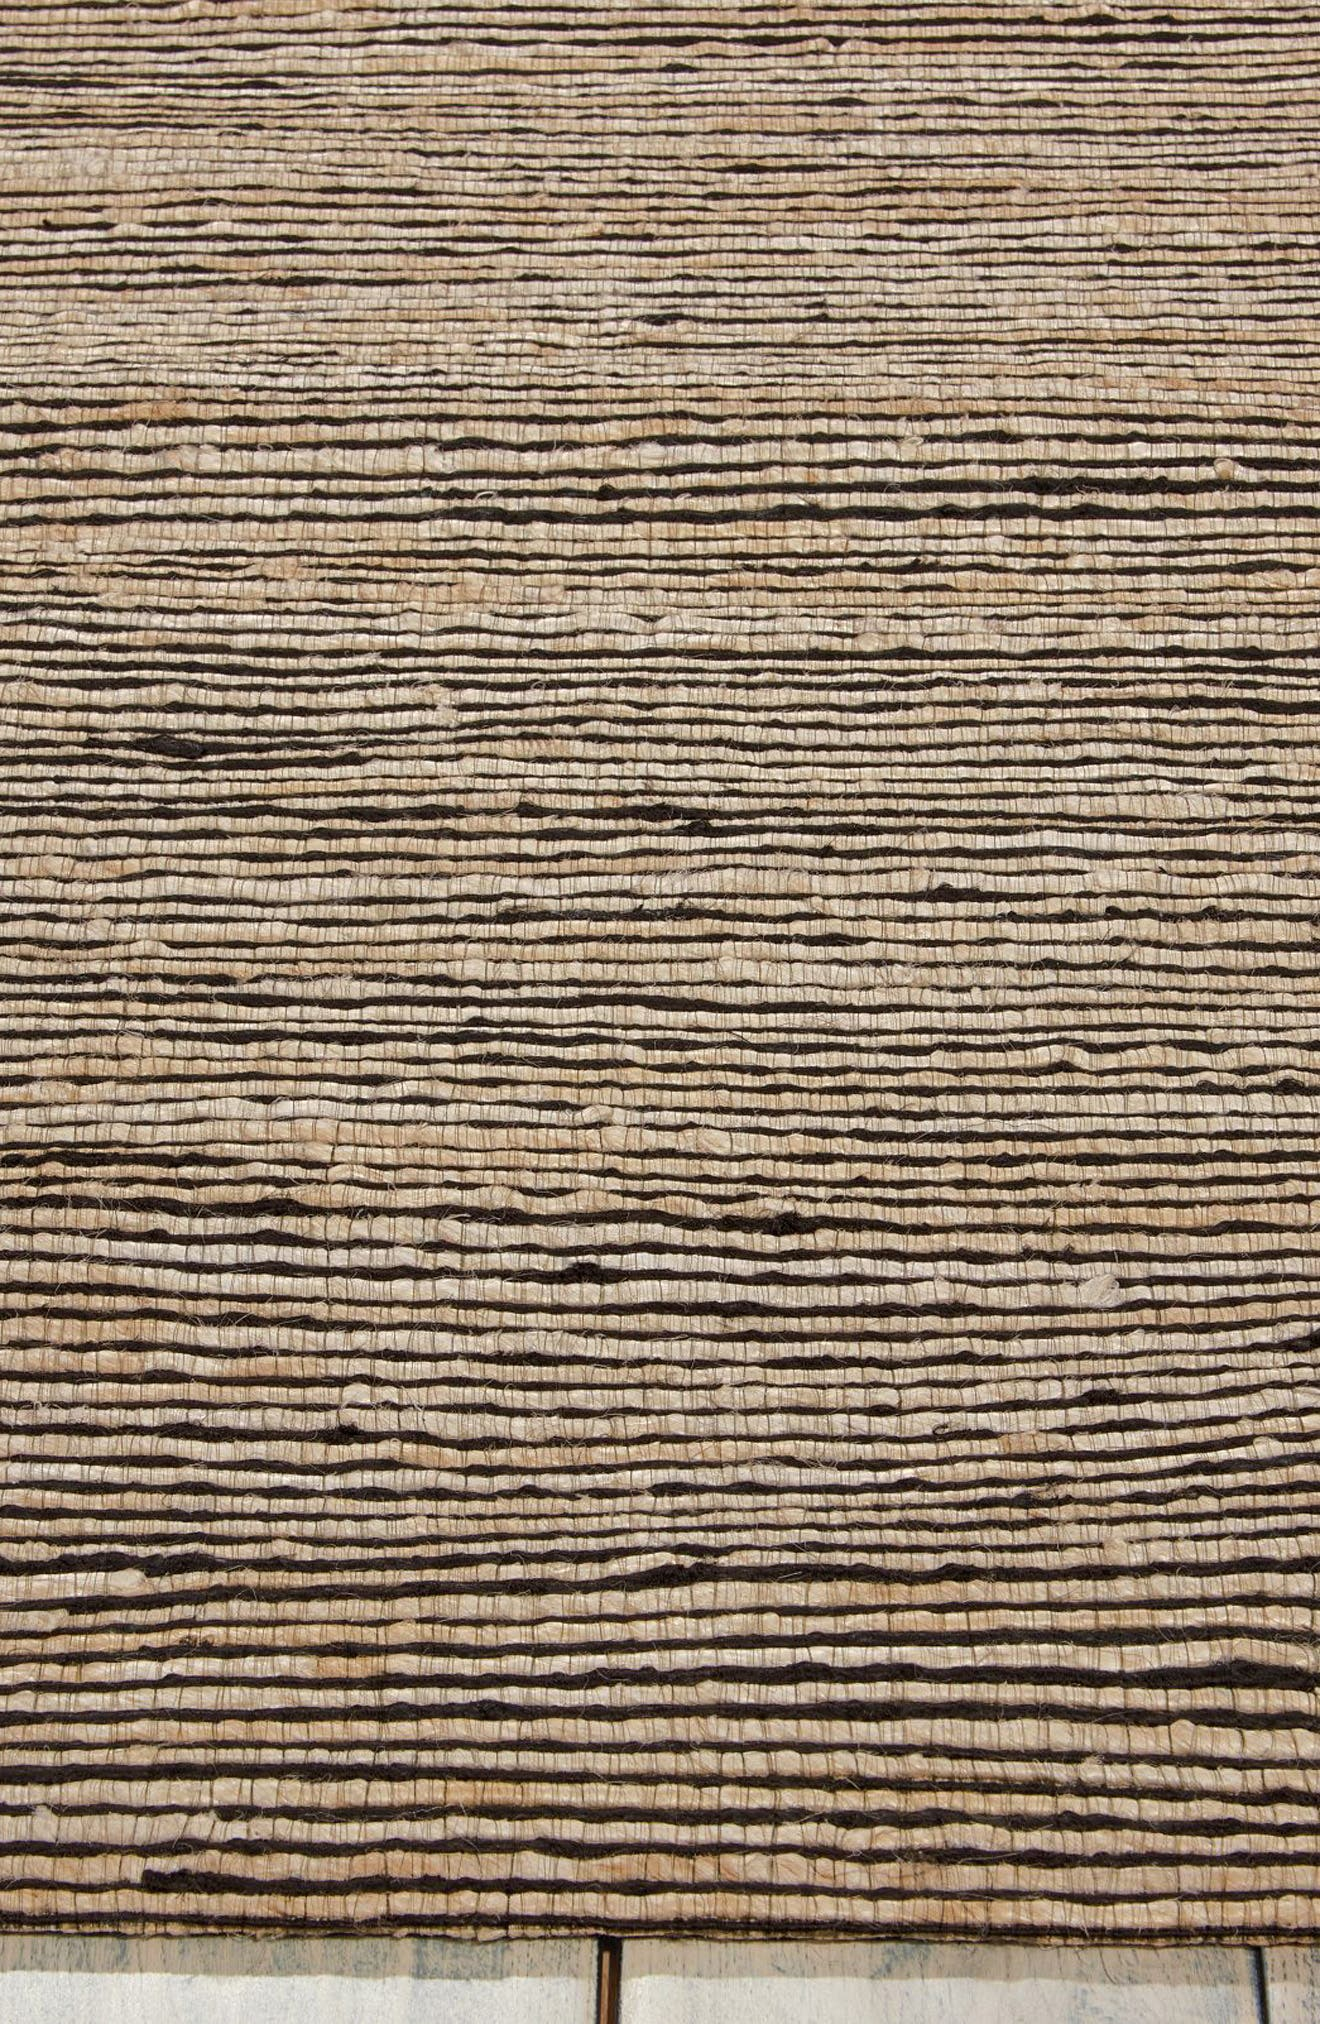 Monsoon Handwoven Area Rug,                             Alternate thumbnail 6, color,                             020